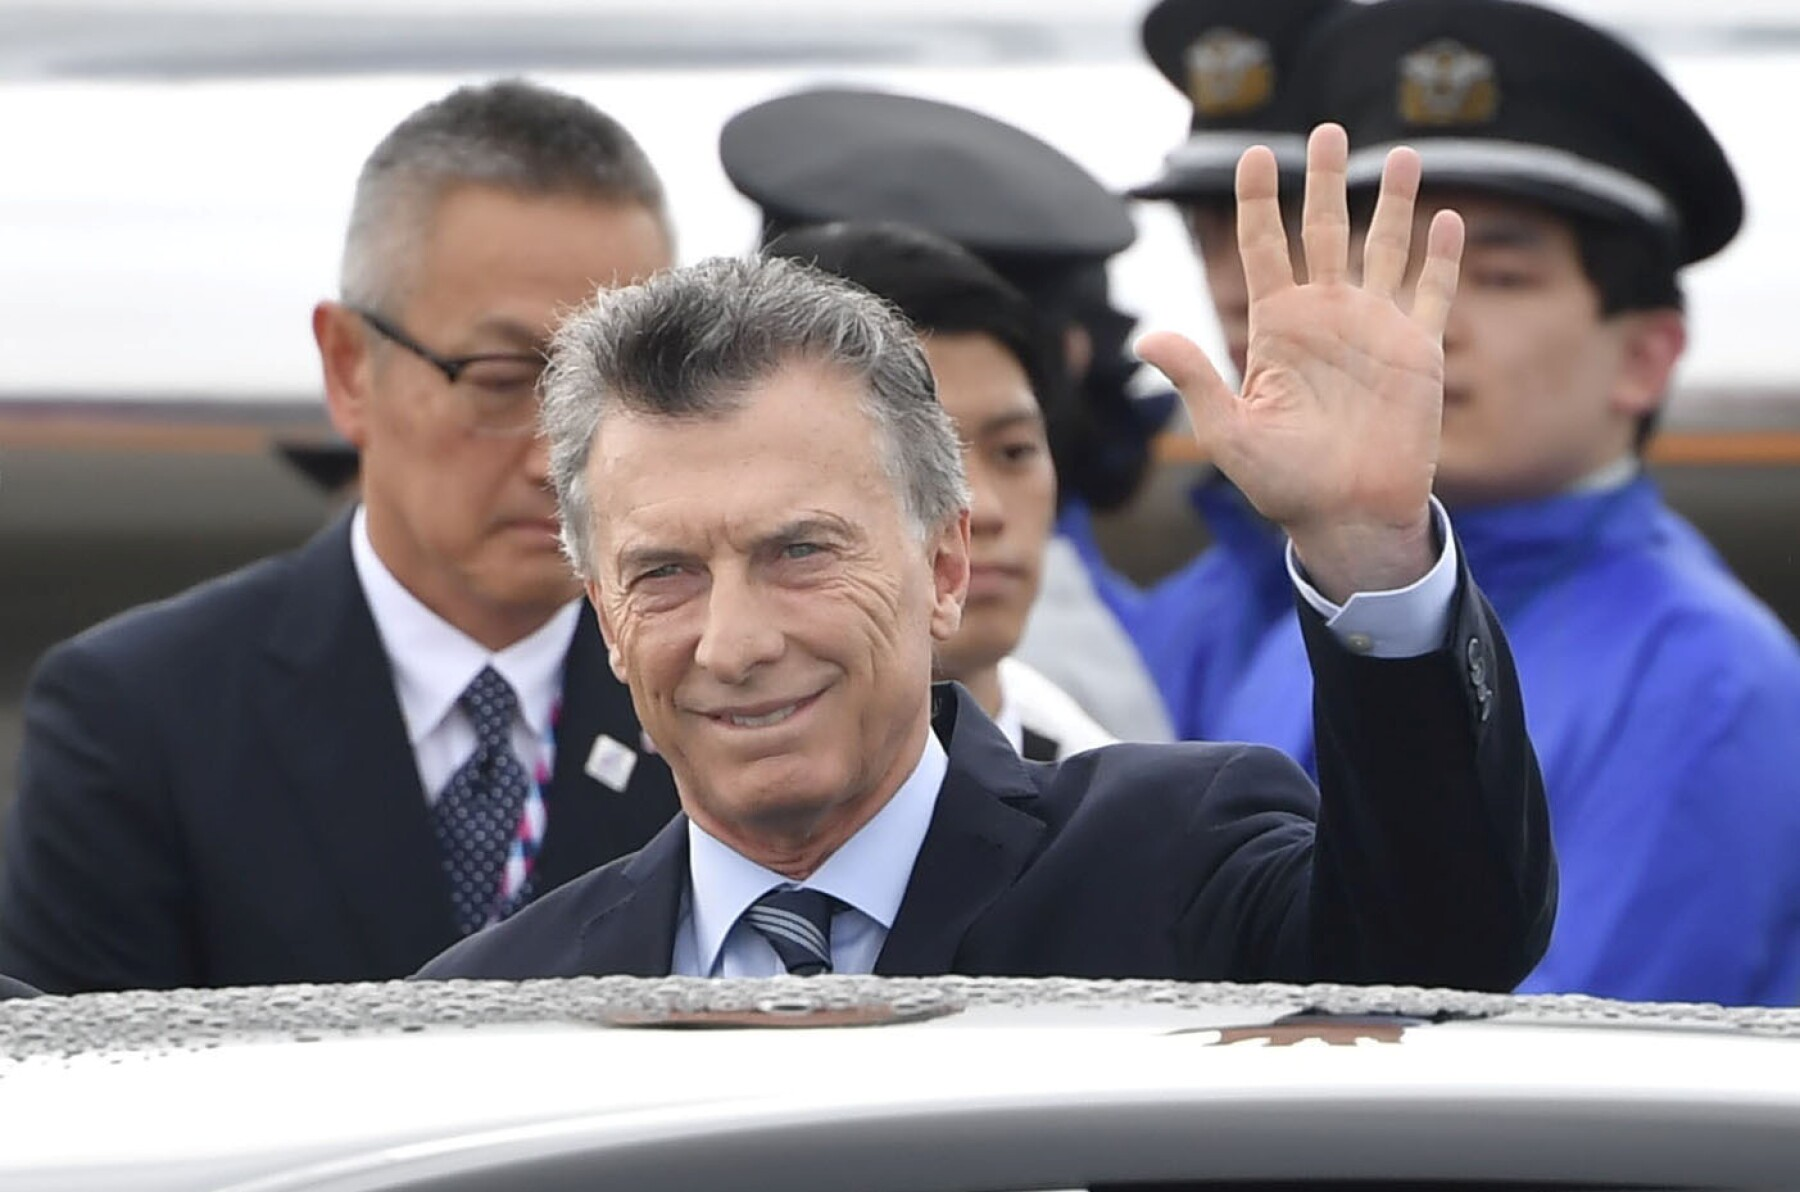 Argentine President Mauricio Macri waves upon his arrival at Kansai international airport ahead of the start of G20 leaders summit in Izumisano, Osaka prefecture, Japan